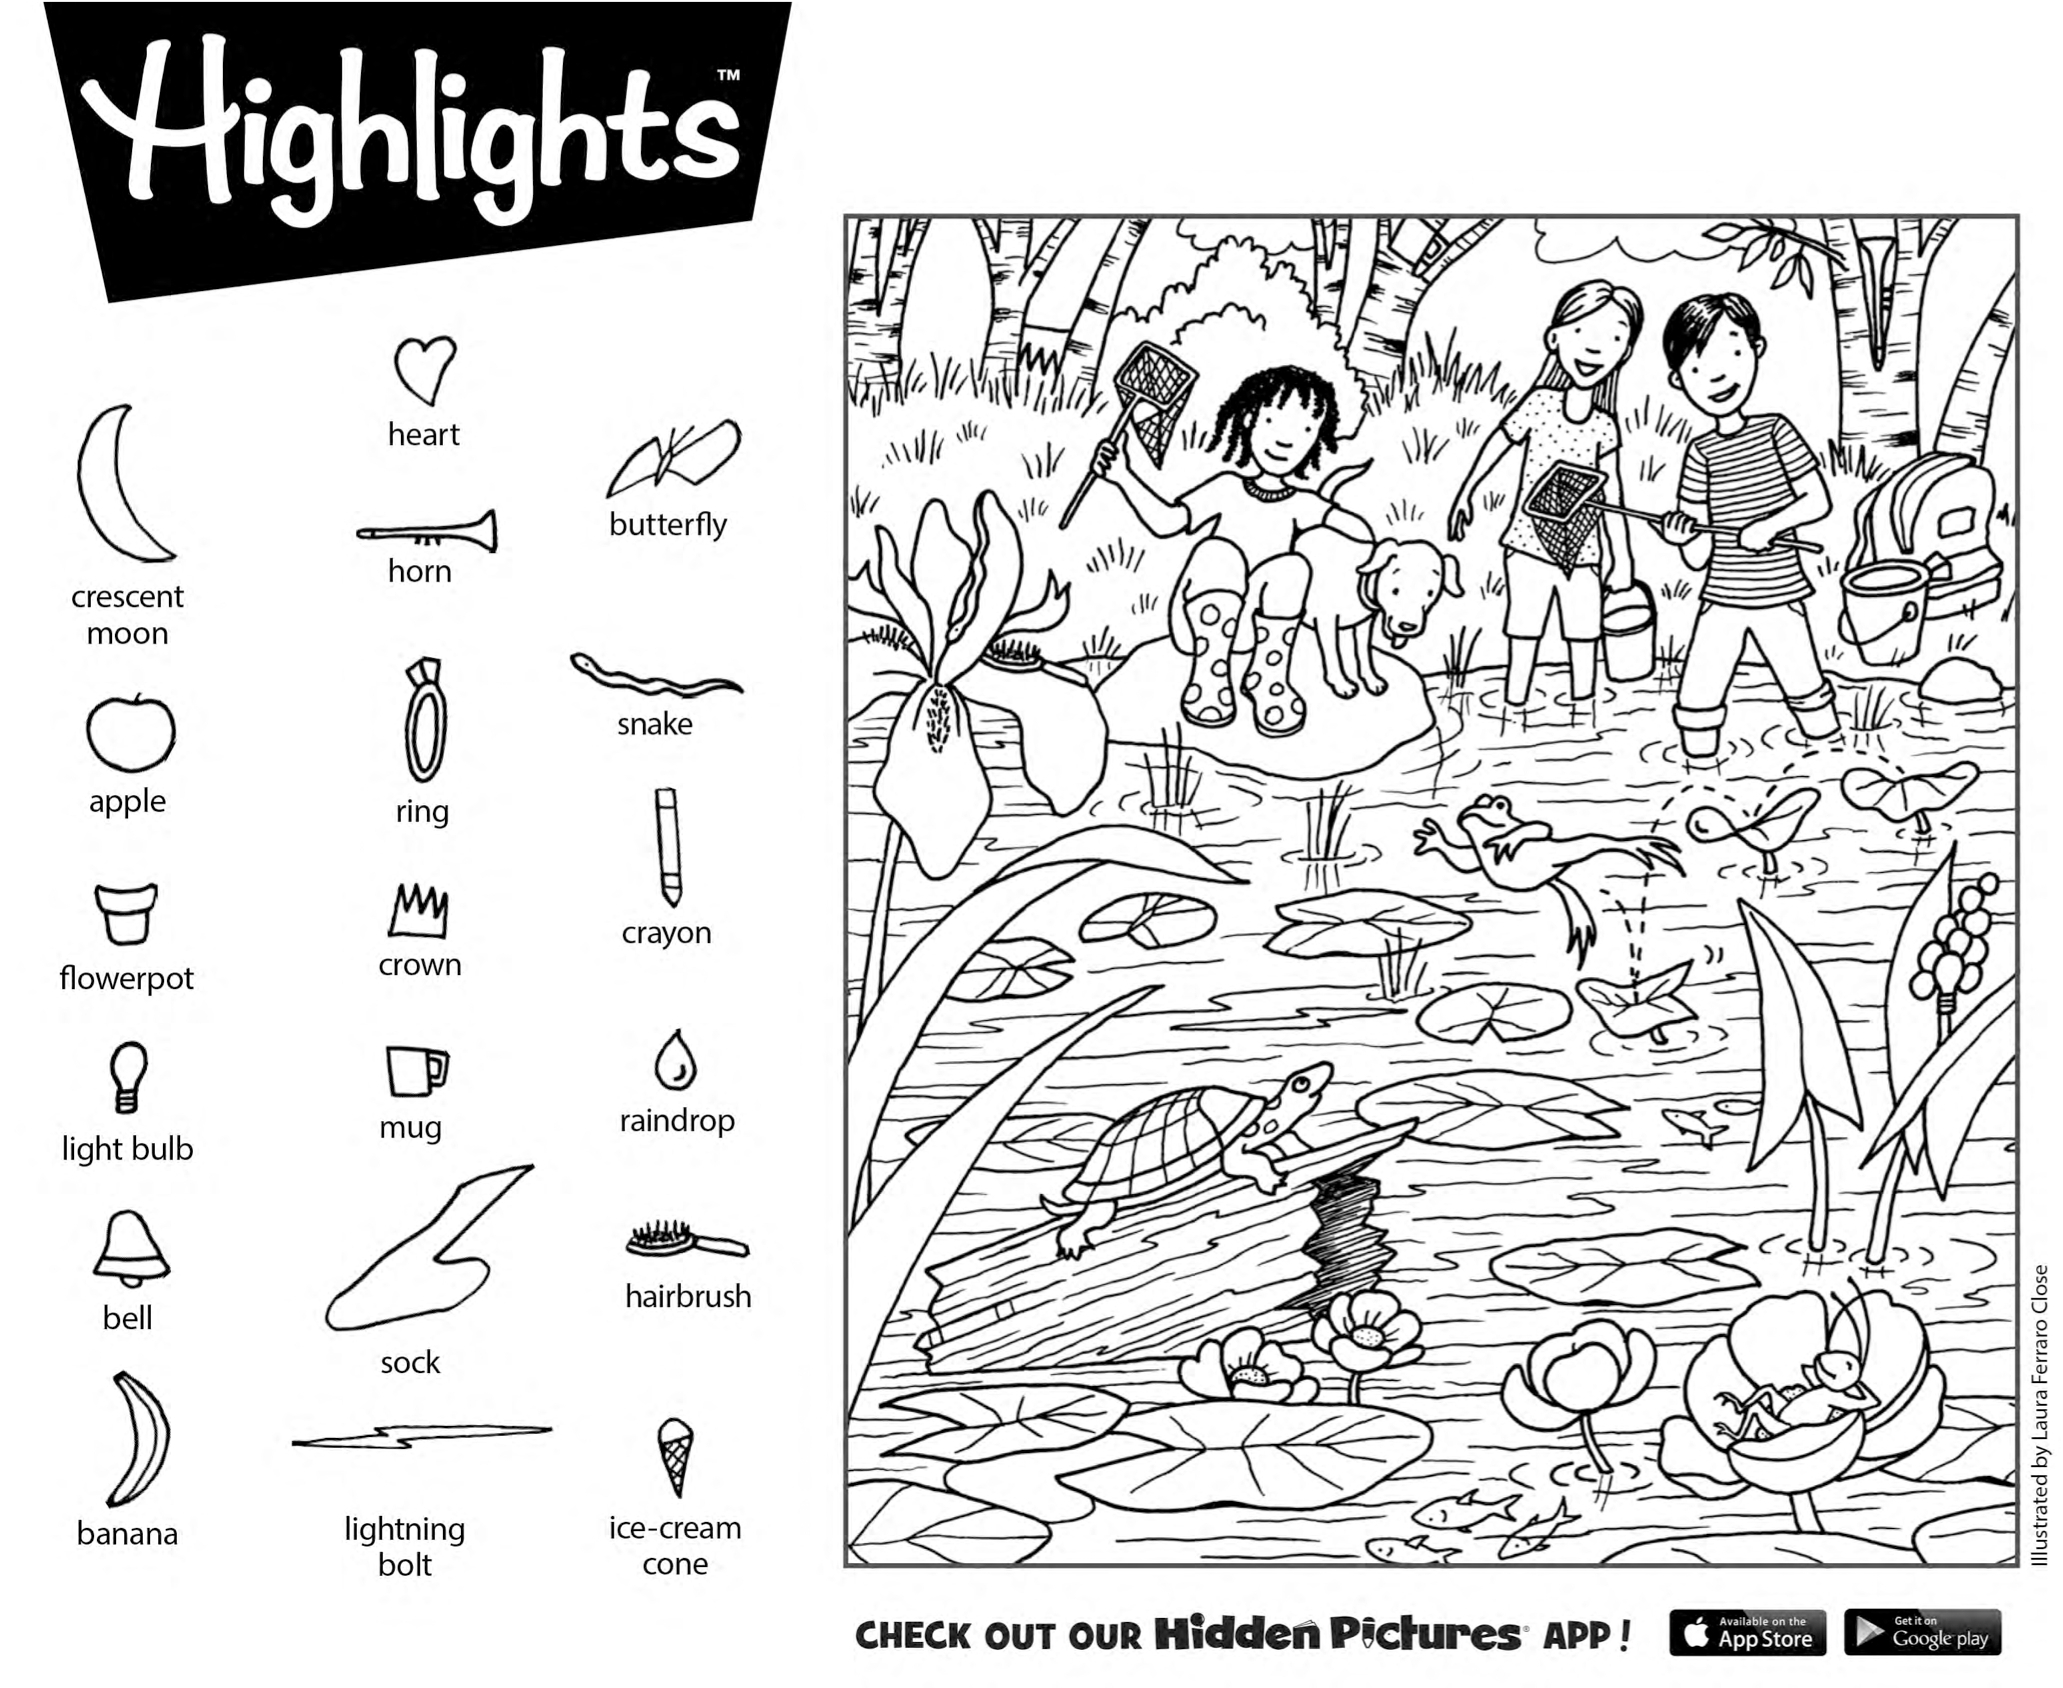 Download This Free Printable Hidden Pictures Puzzle From Highlights | Highlights Hidden Pictures Printable Worksheets